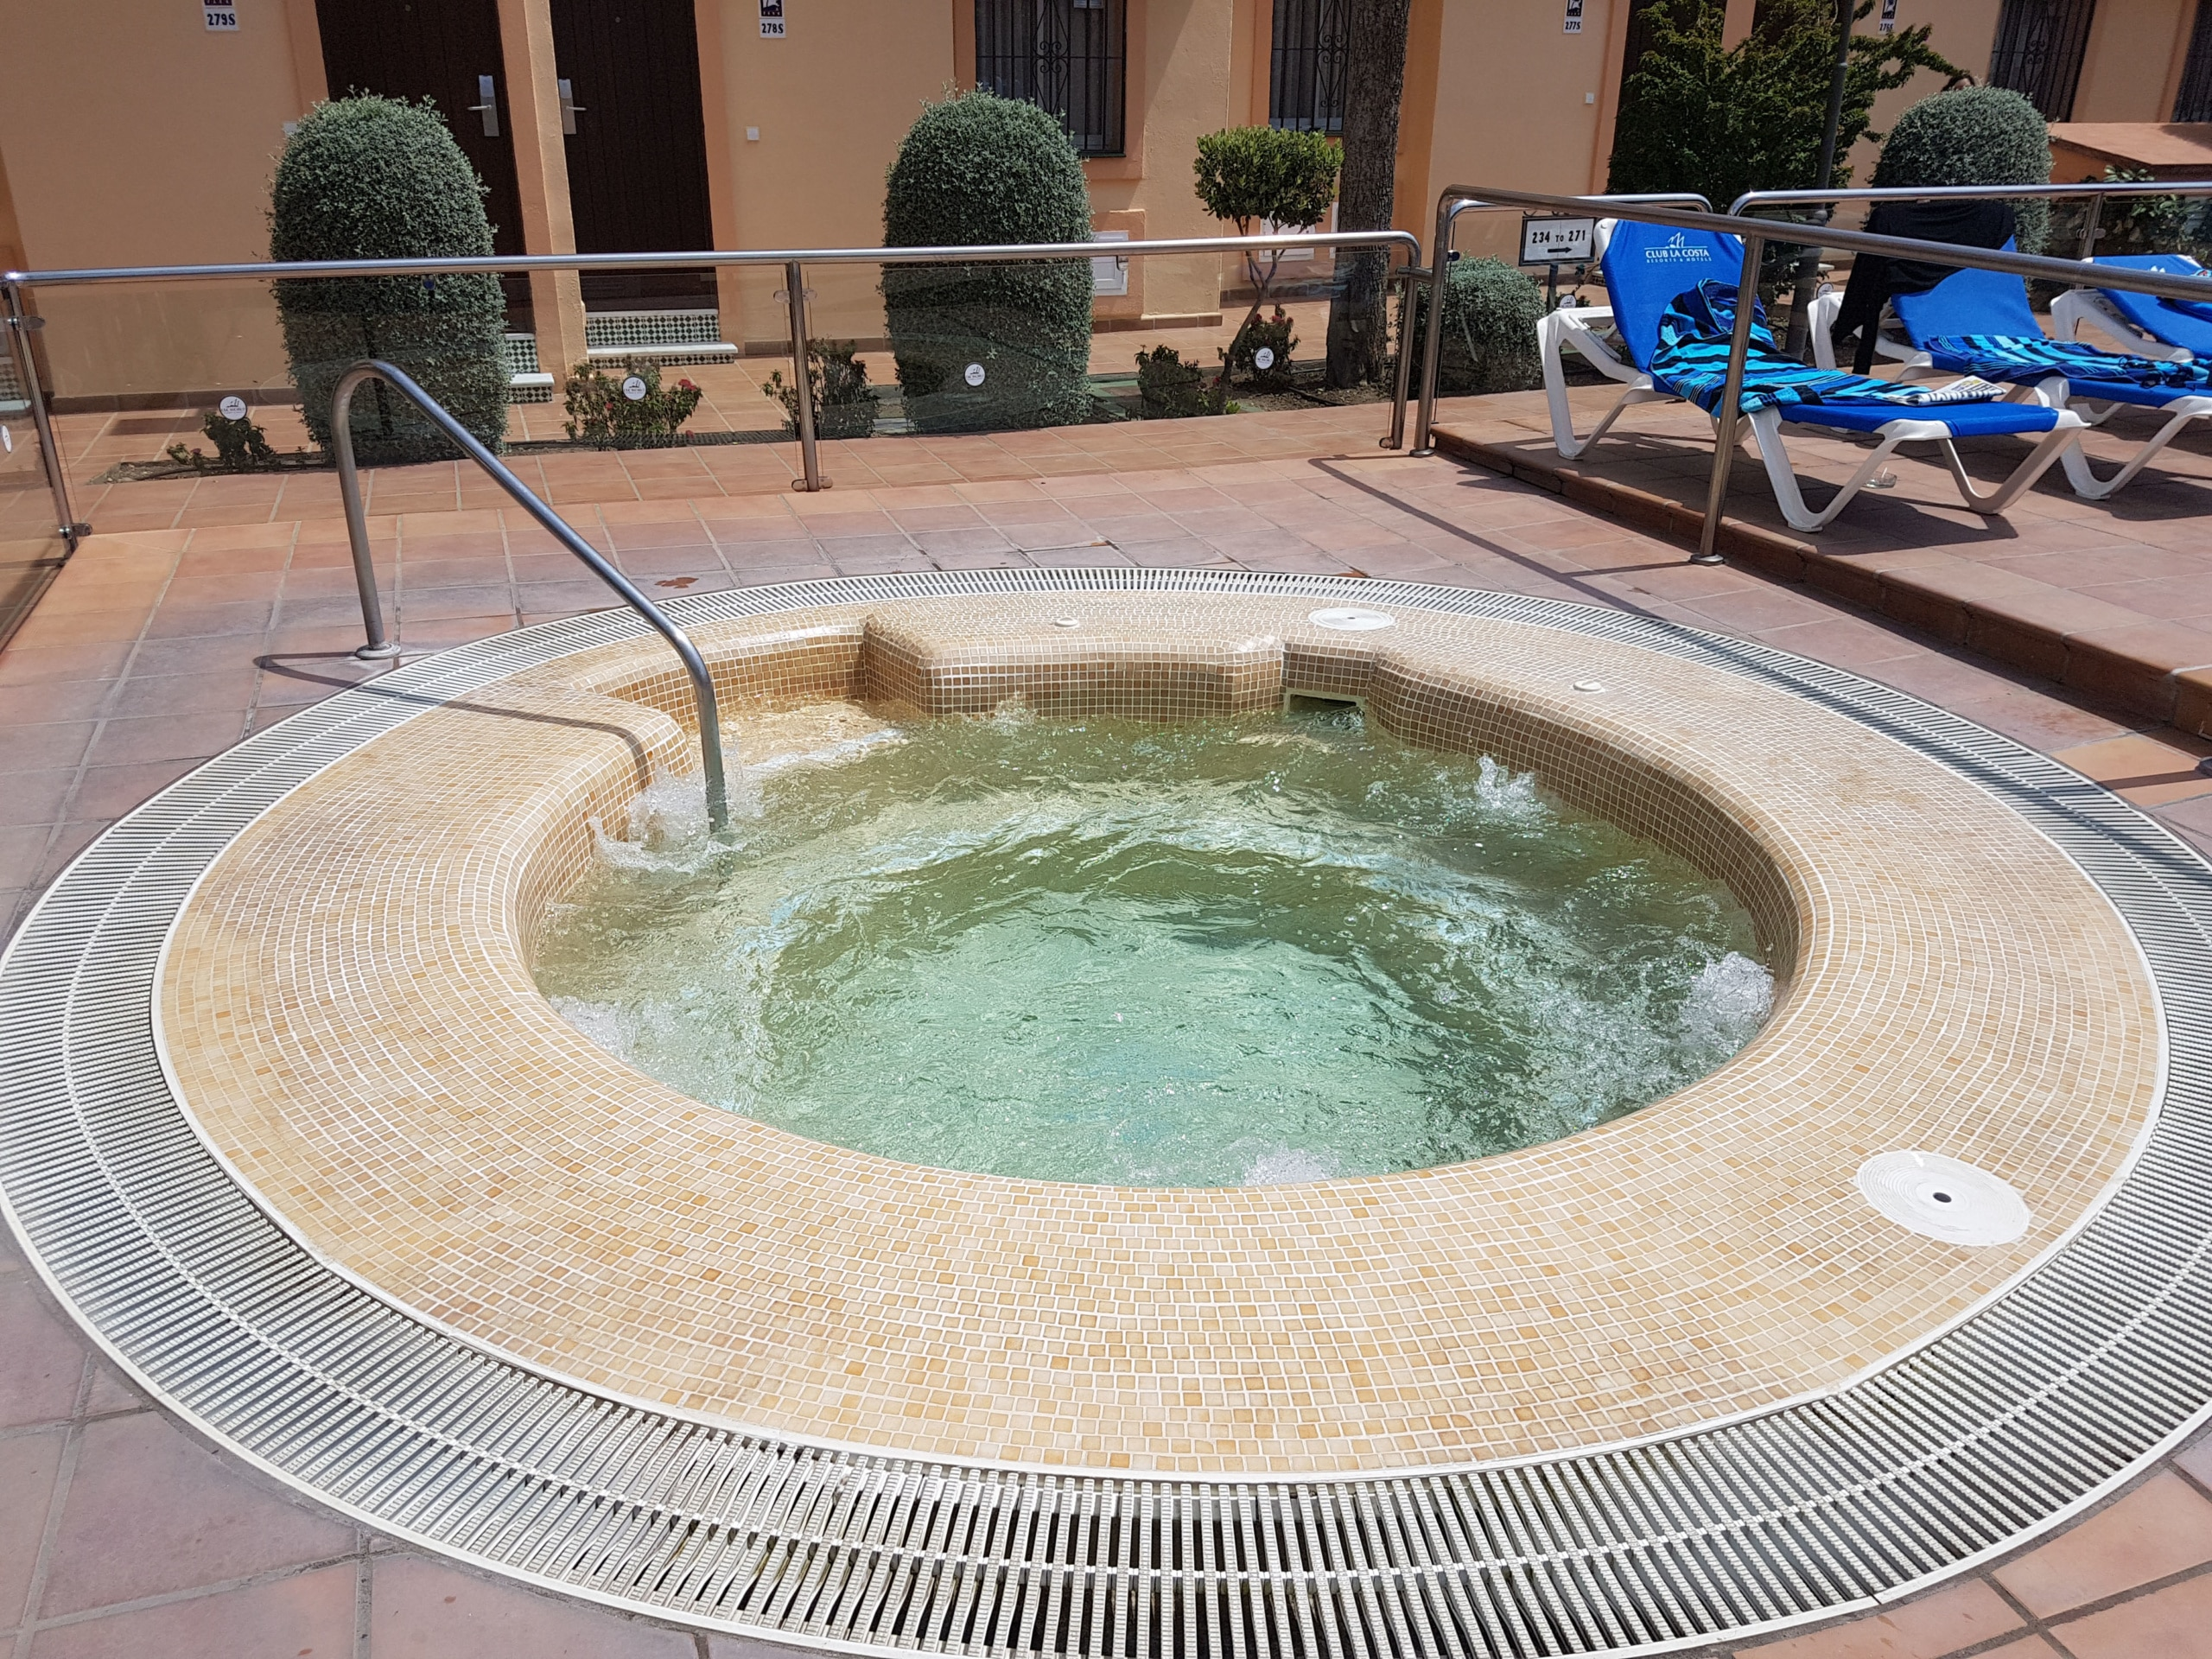 Jacuzzi, heated all year